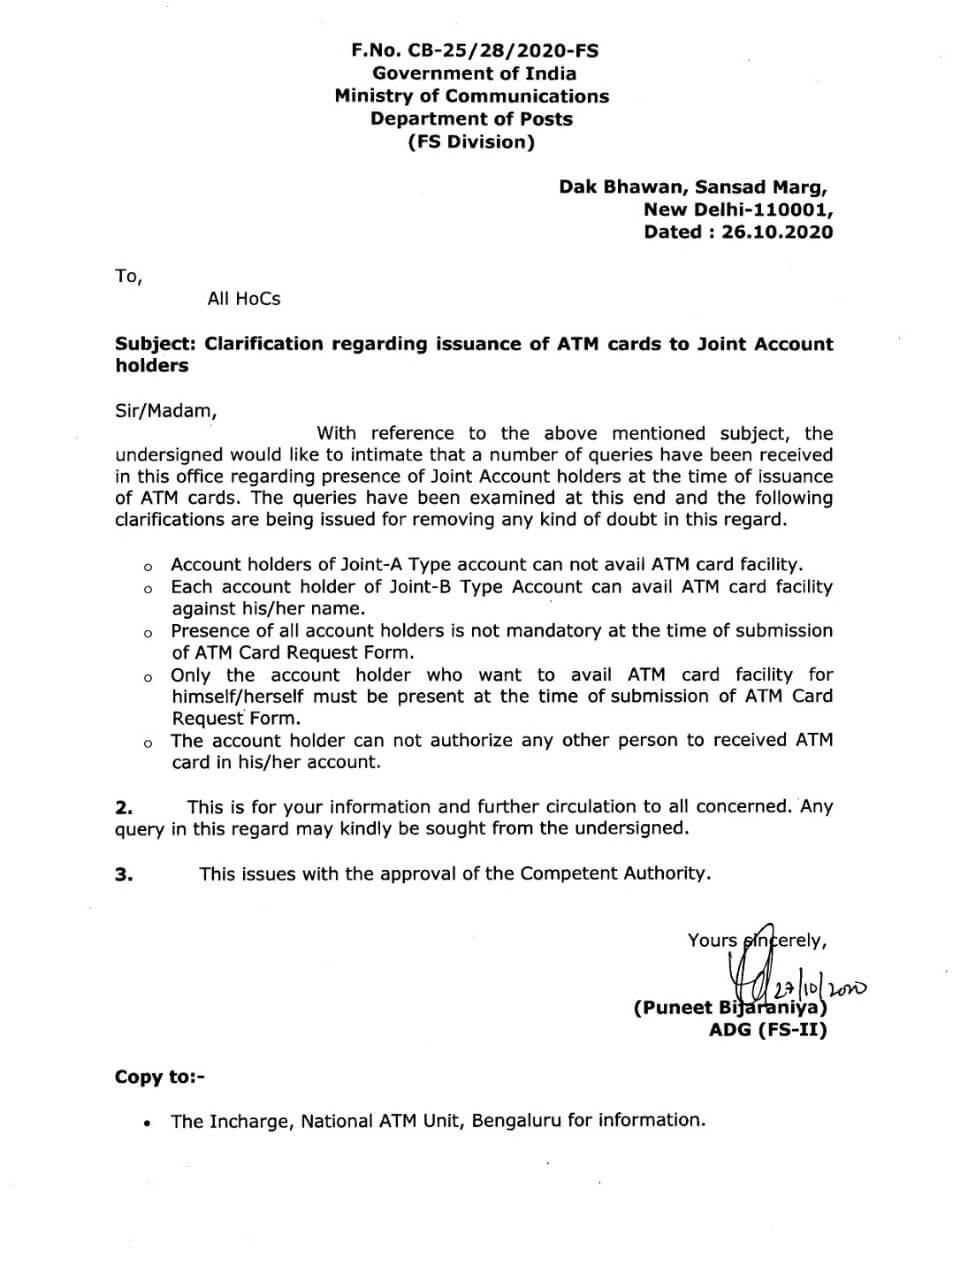 DOP clarification on ATM card for joint account